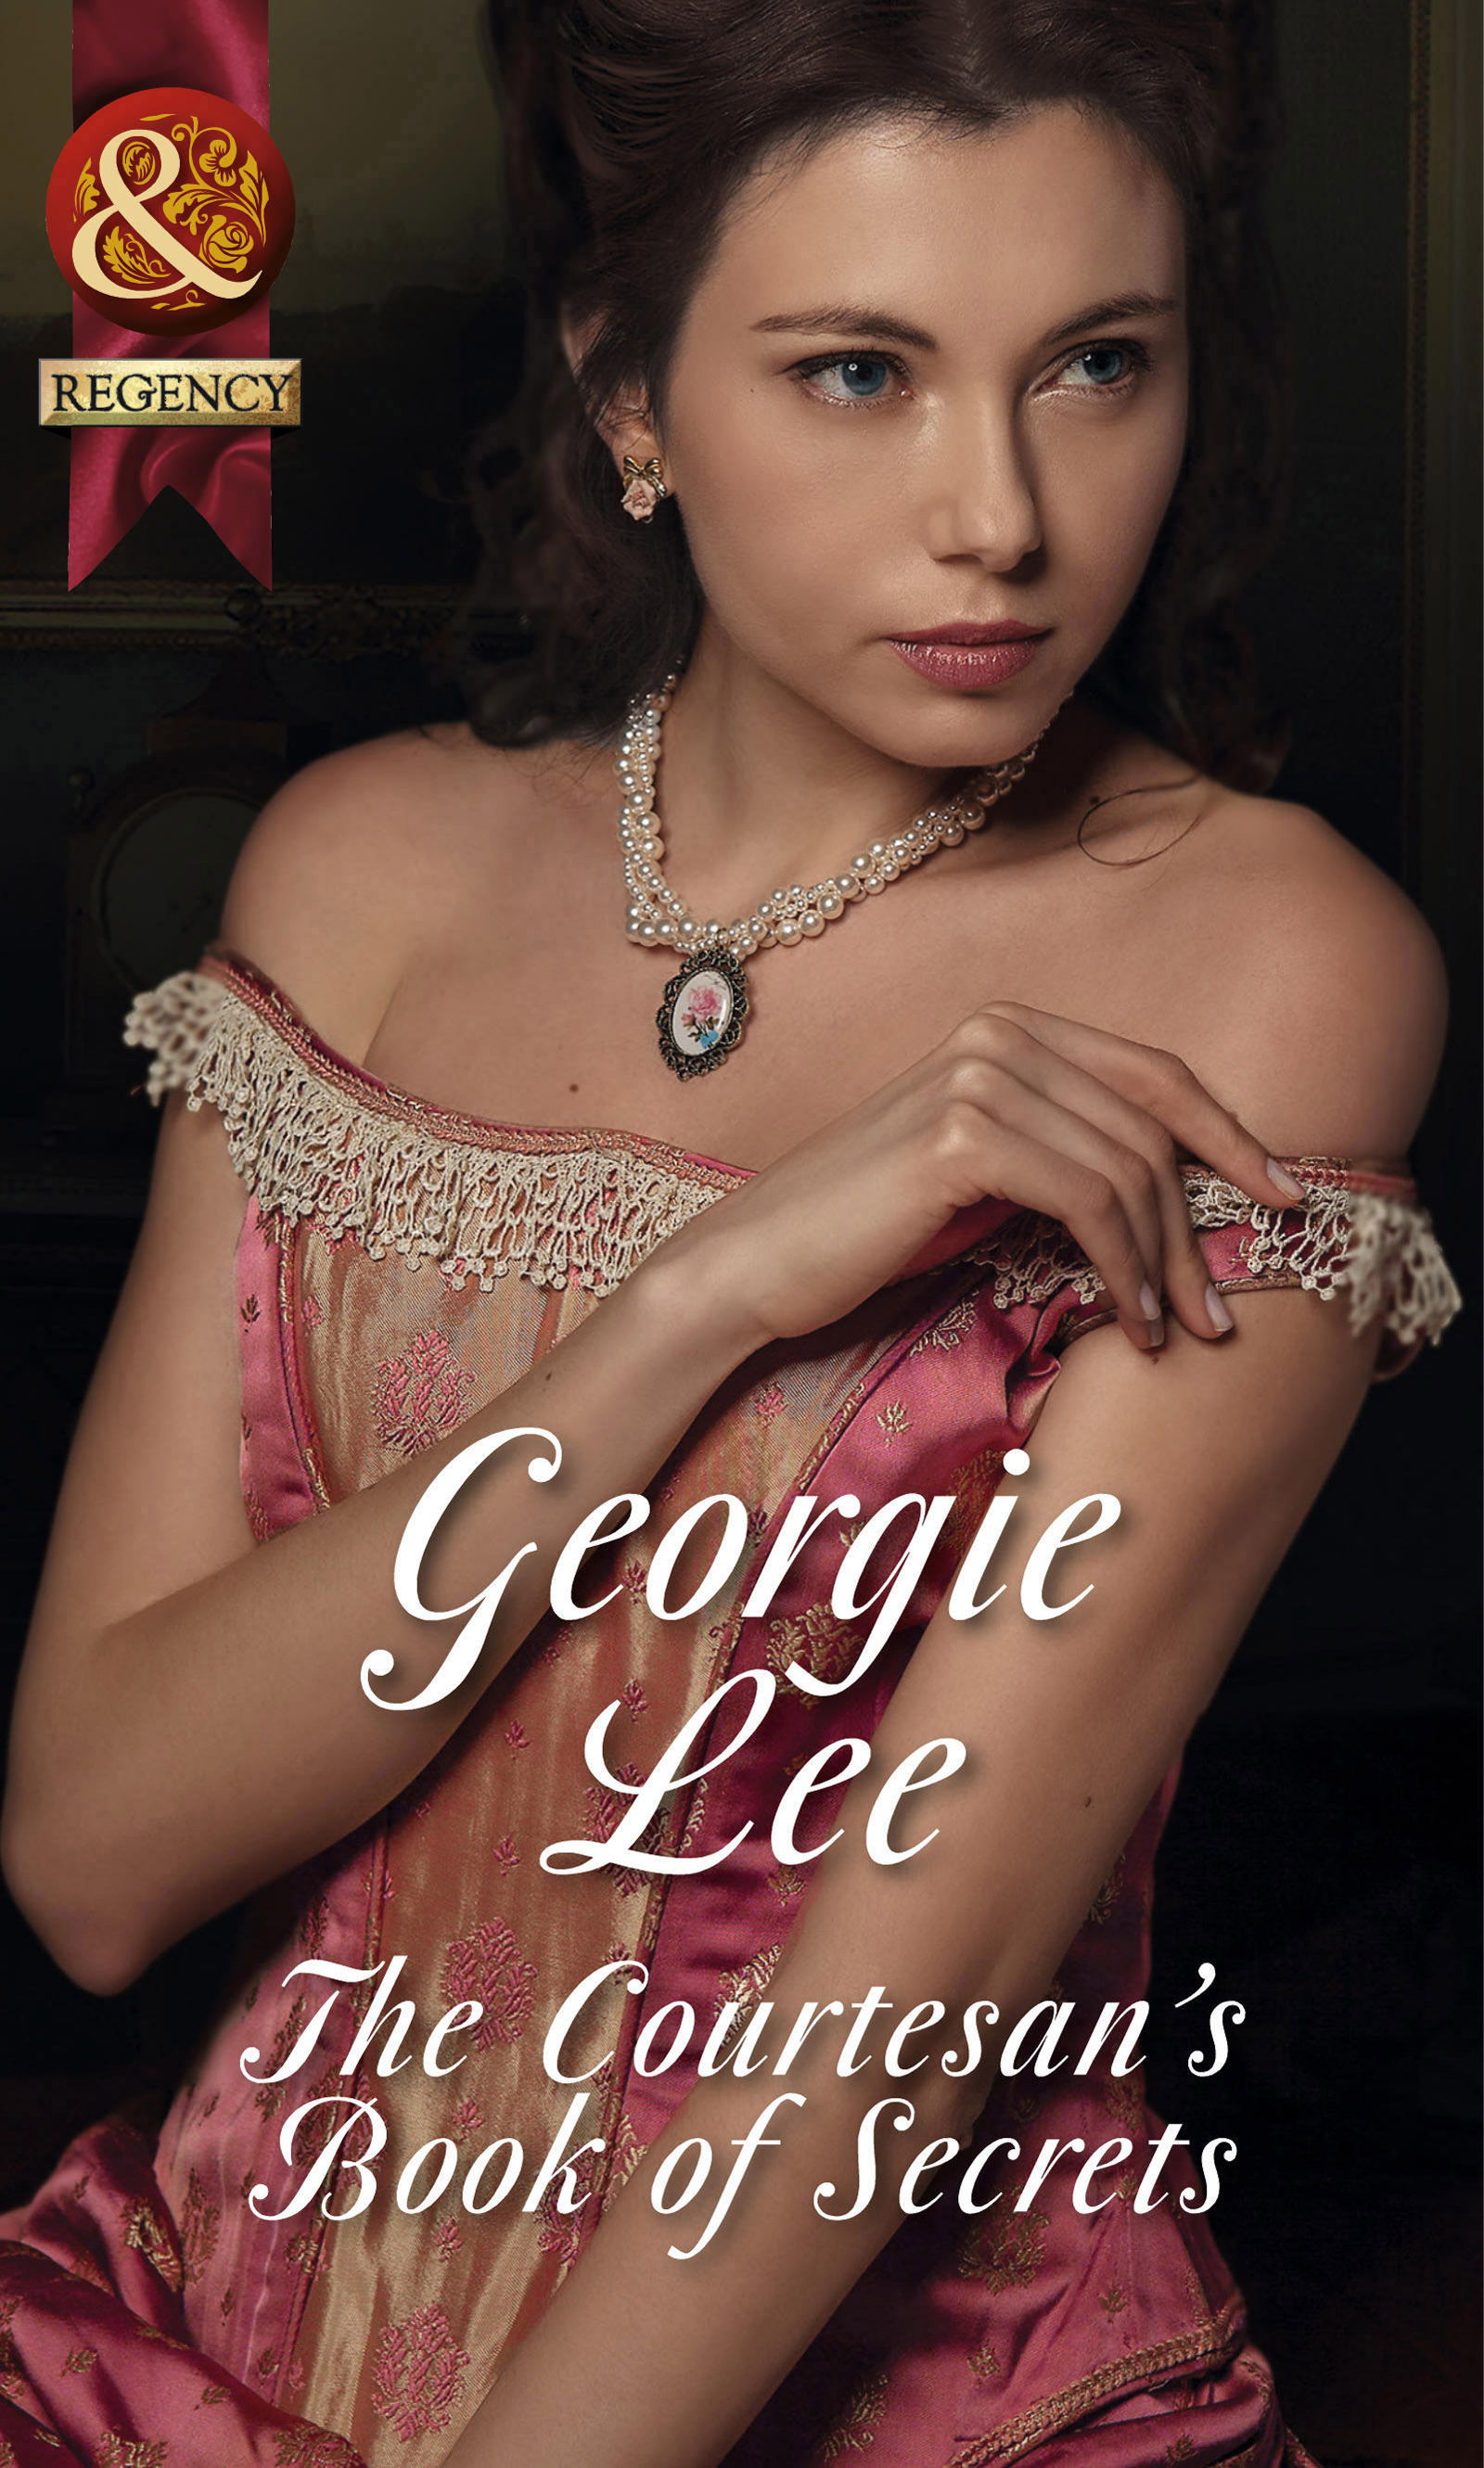 The Courtesan's Book of Secrets (Mills & Boon Historical)